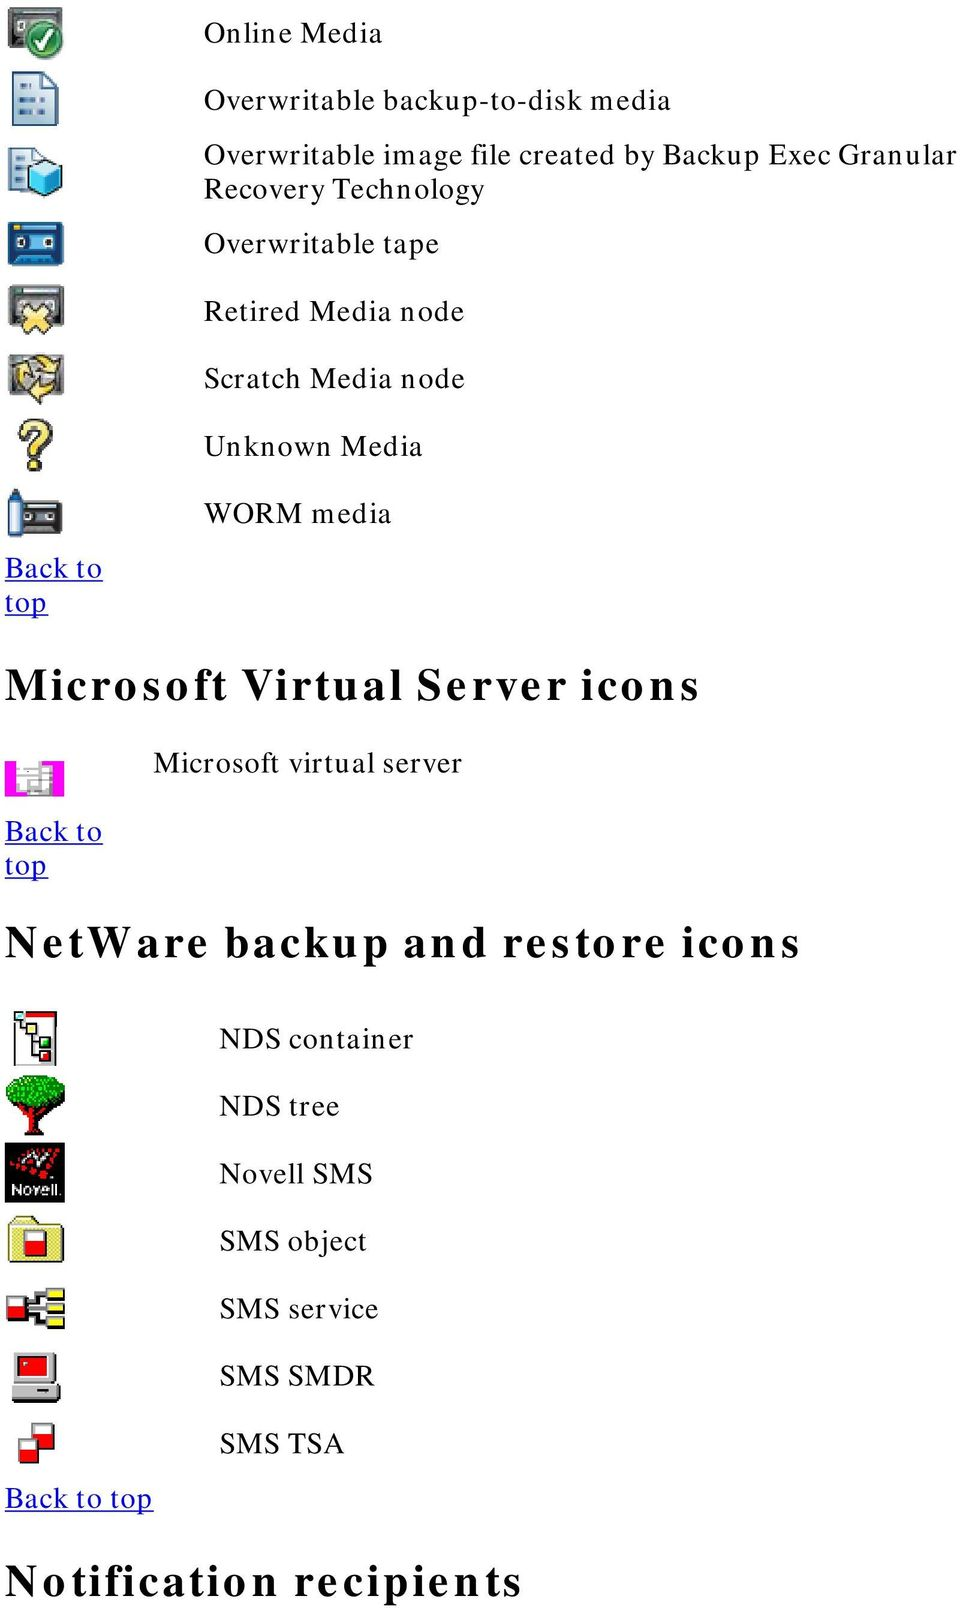 WORM media Microsoft Virtual Server icons Back to top Microsoft virtual server NetWare backup and